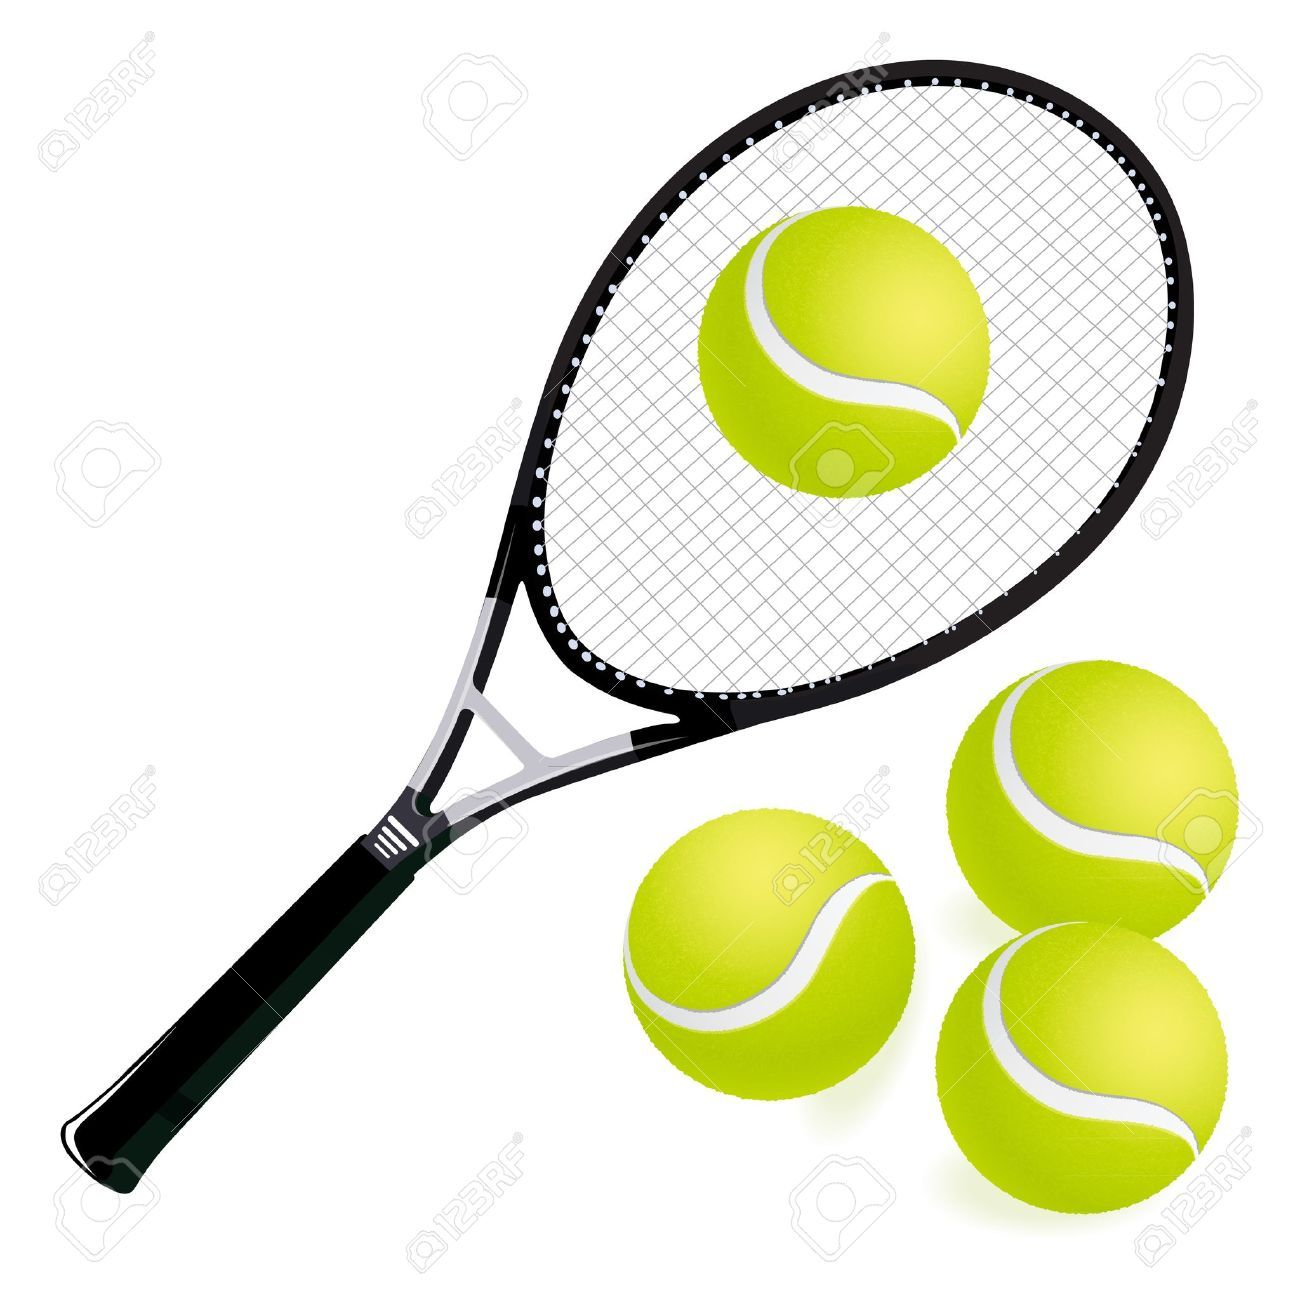 Tennis Racket Stock Illustrations Cliparts And Royalty Free Tennis Racket Rackets Tennis